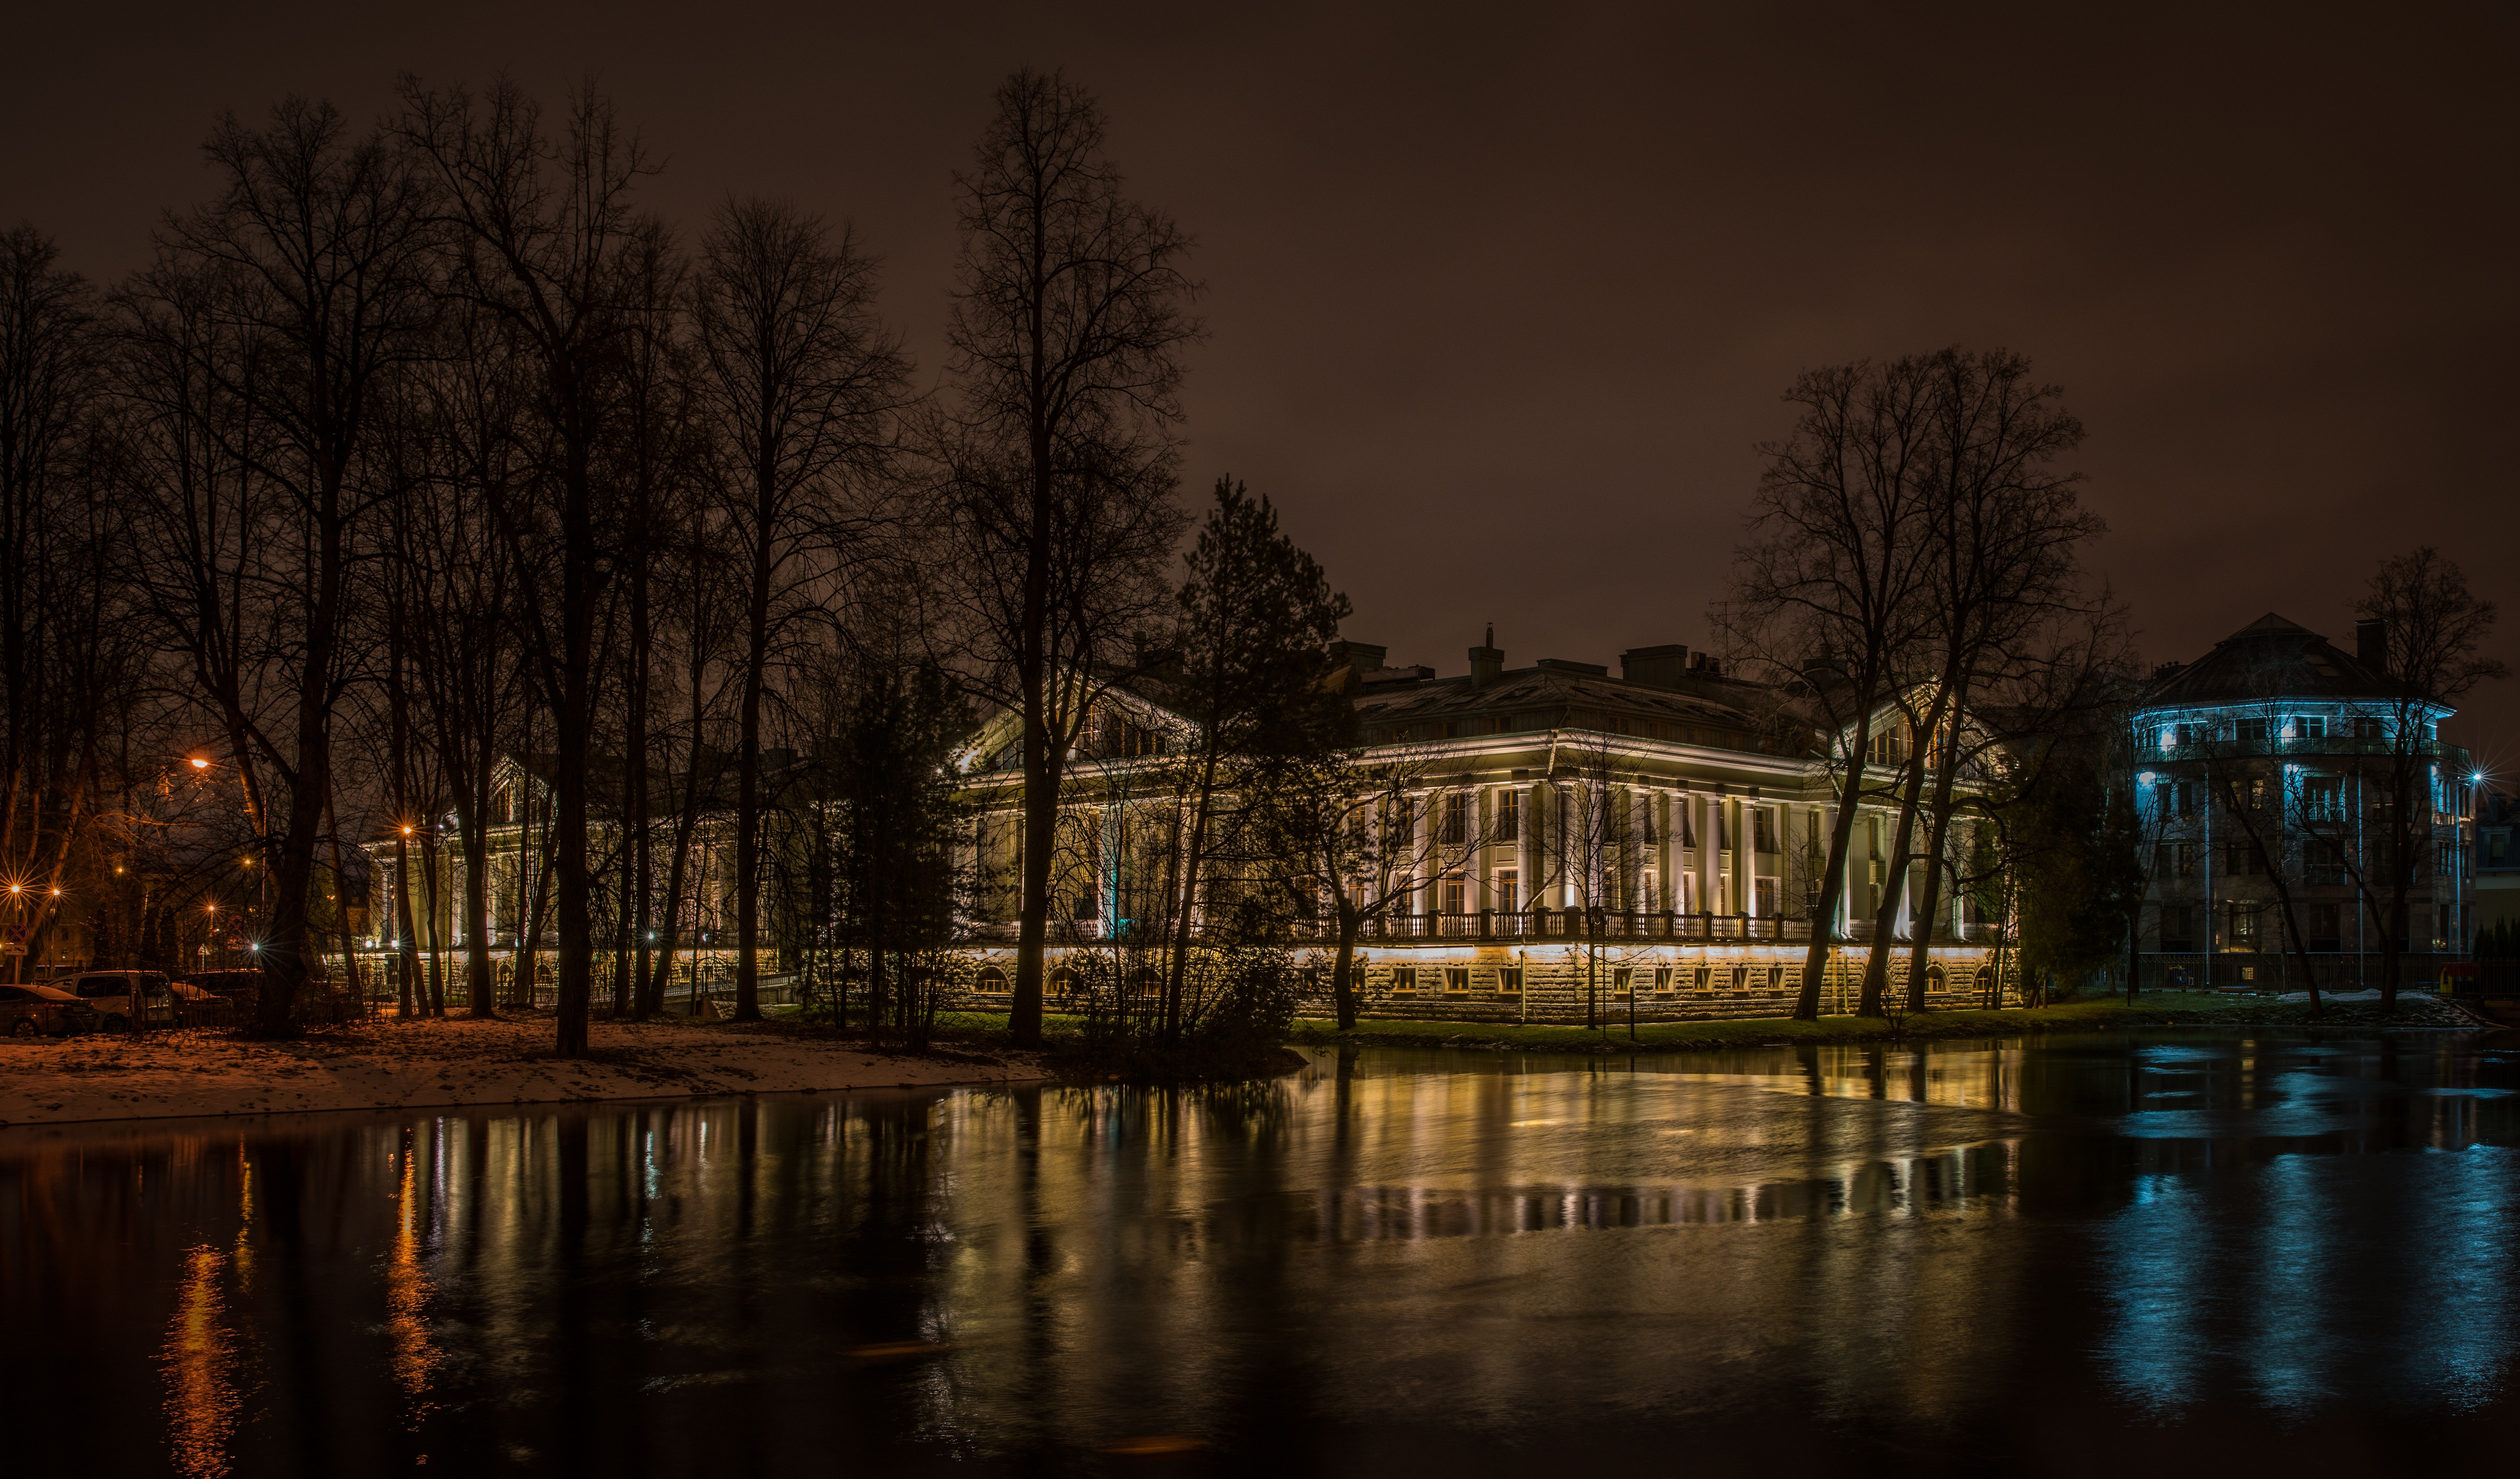 Palace during night time photo